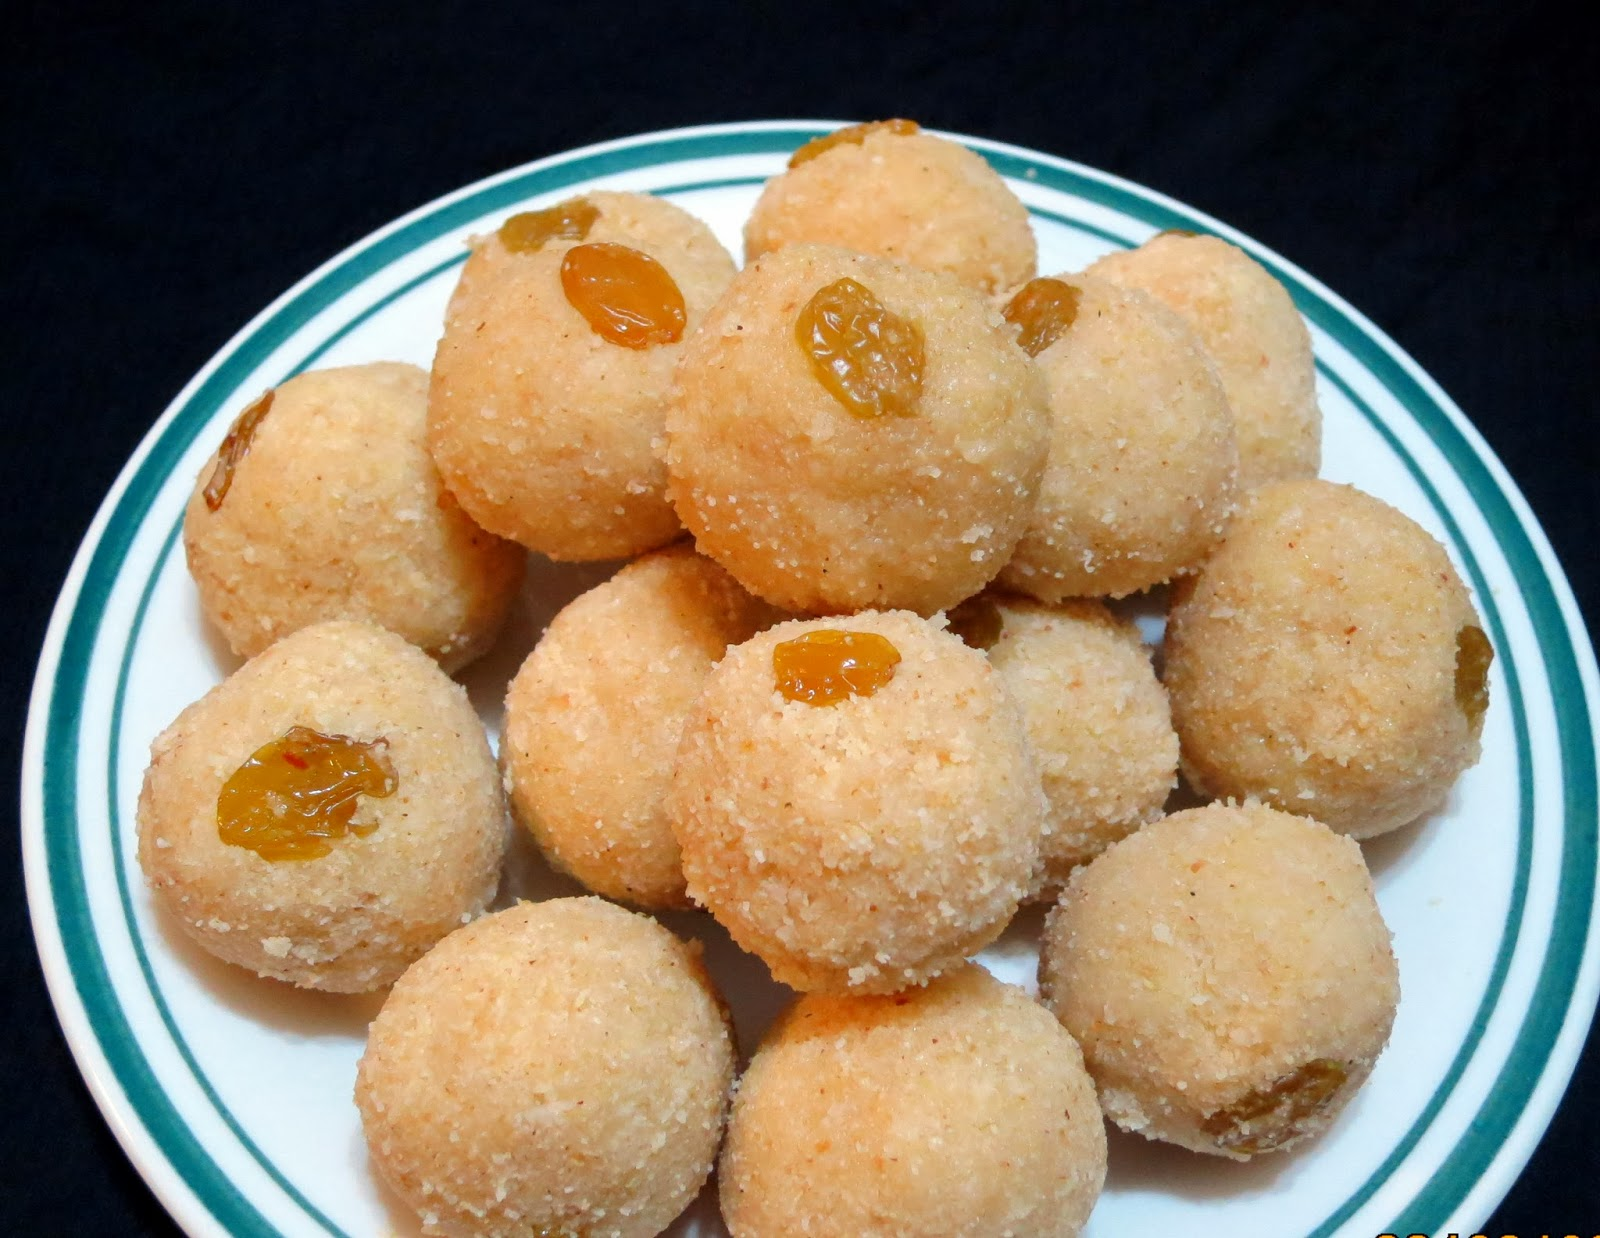 Simply Delicious: Rava and Coconut Laddu